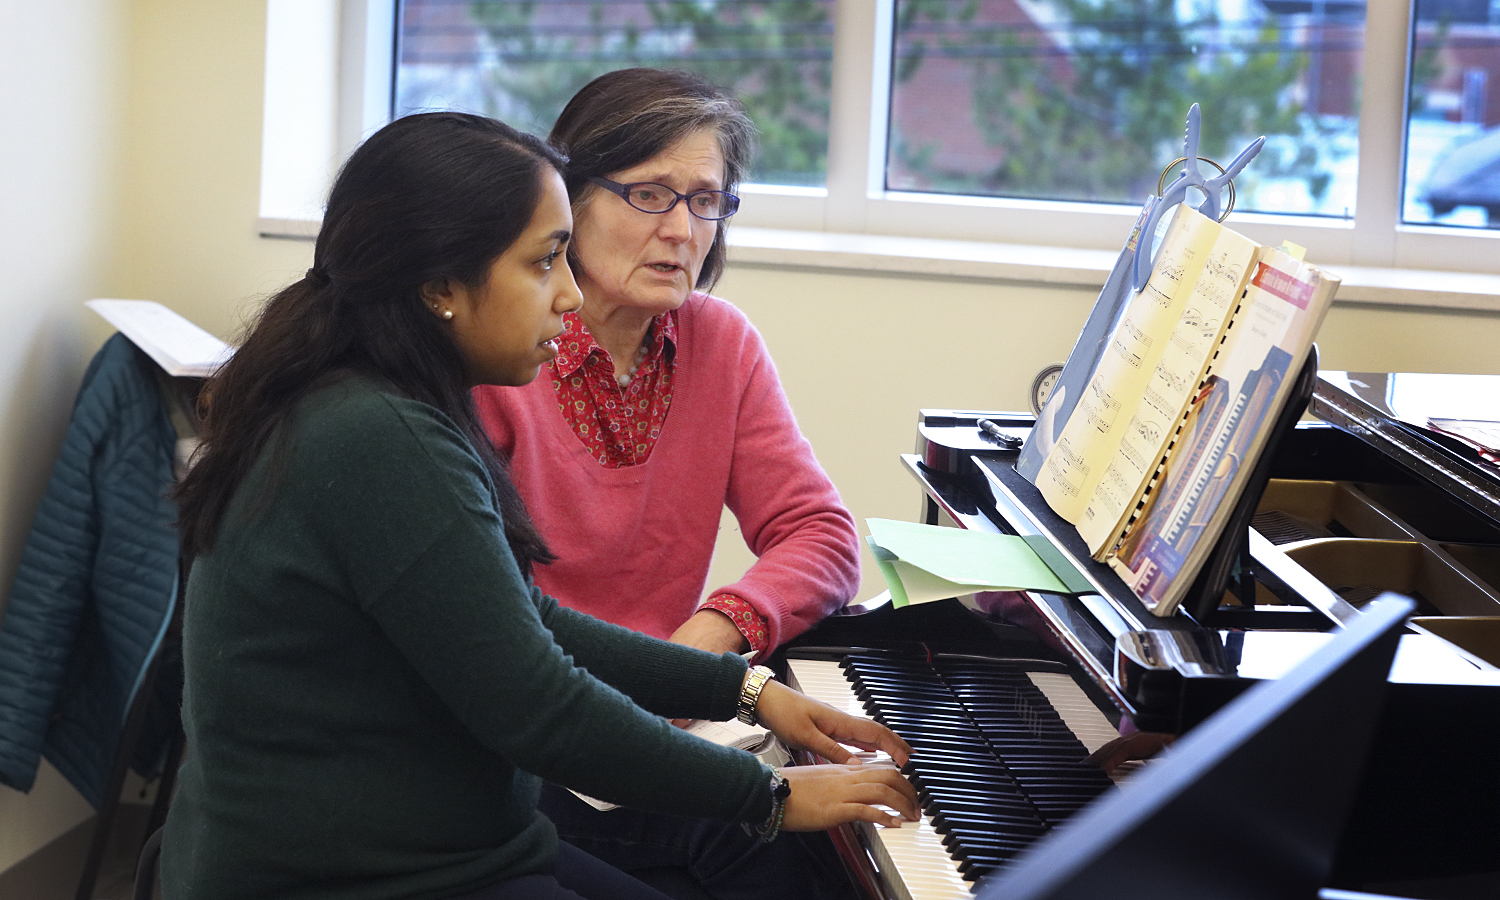 Namita Neerukonda '17 works on a piece with Applied Instructor of Piano Meg Heaton in a practice room in the Gearan Center for the Performing Arts.